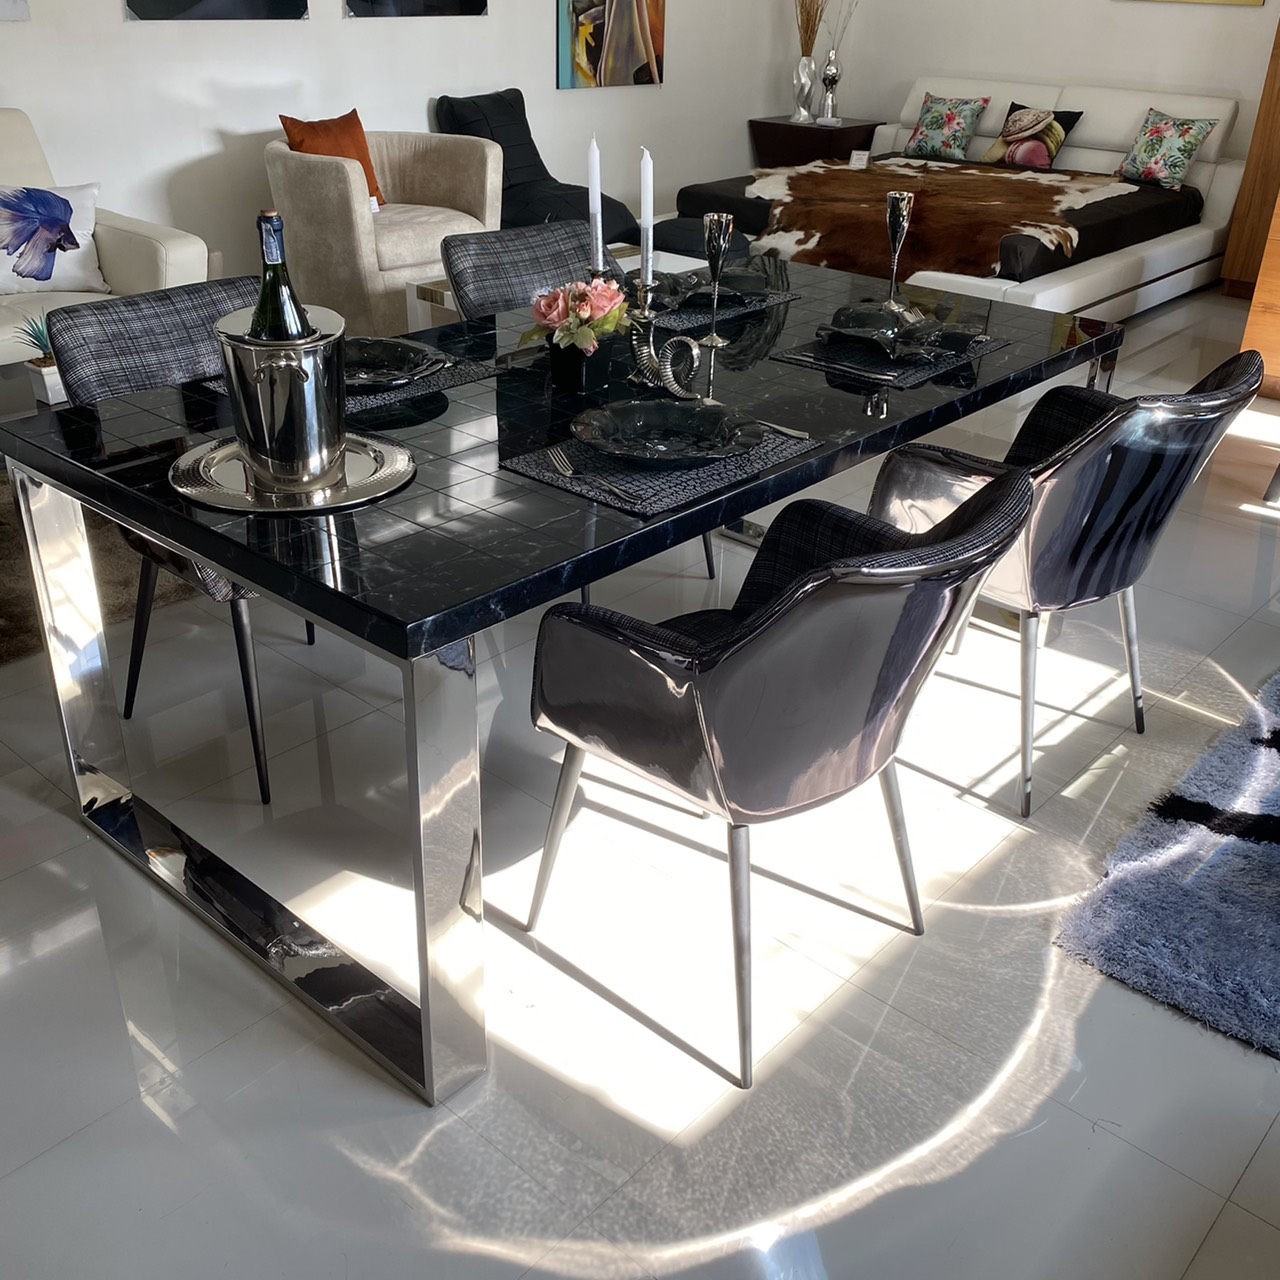 Black Onyx mosaic dining table